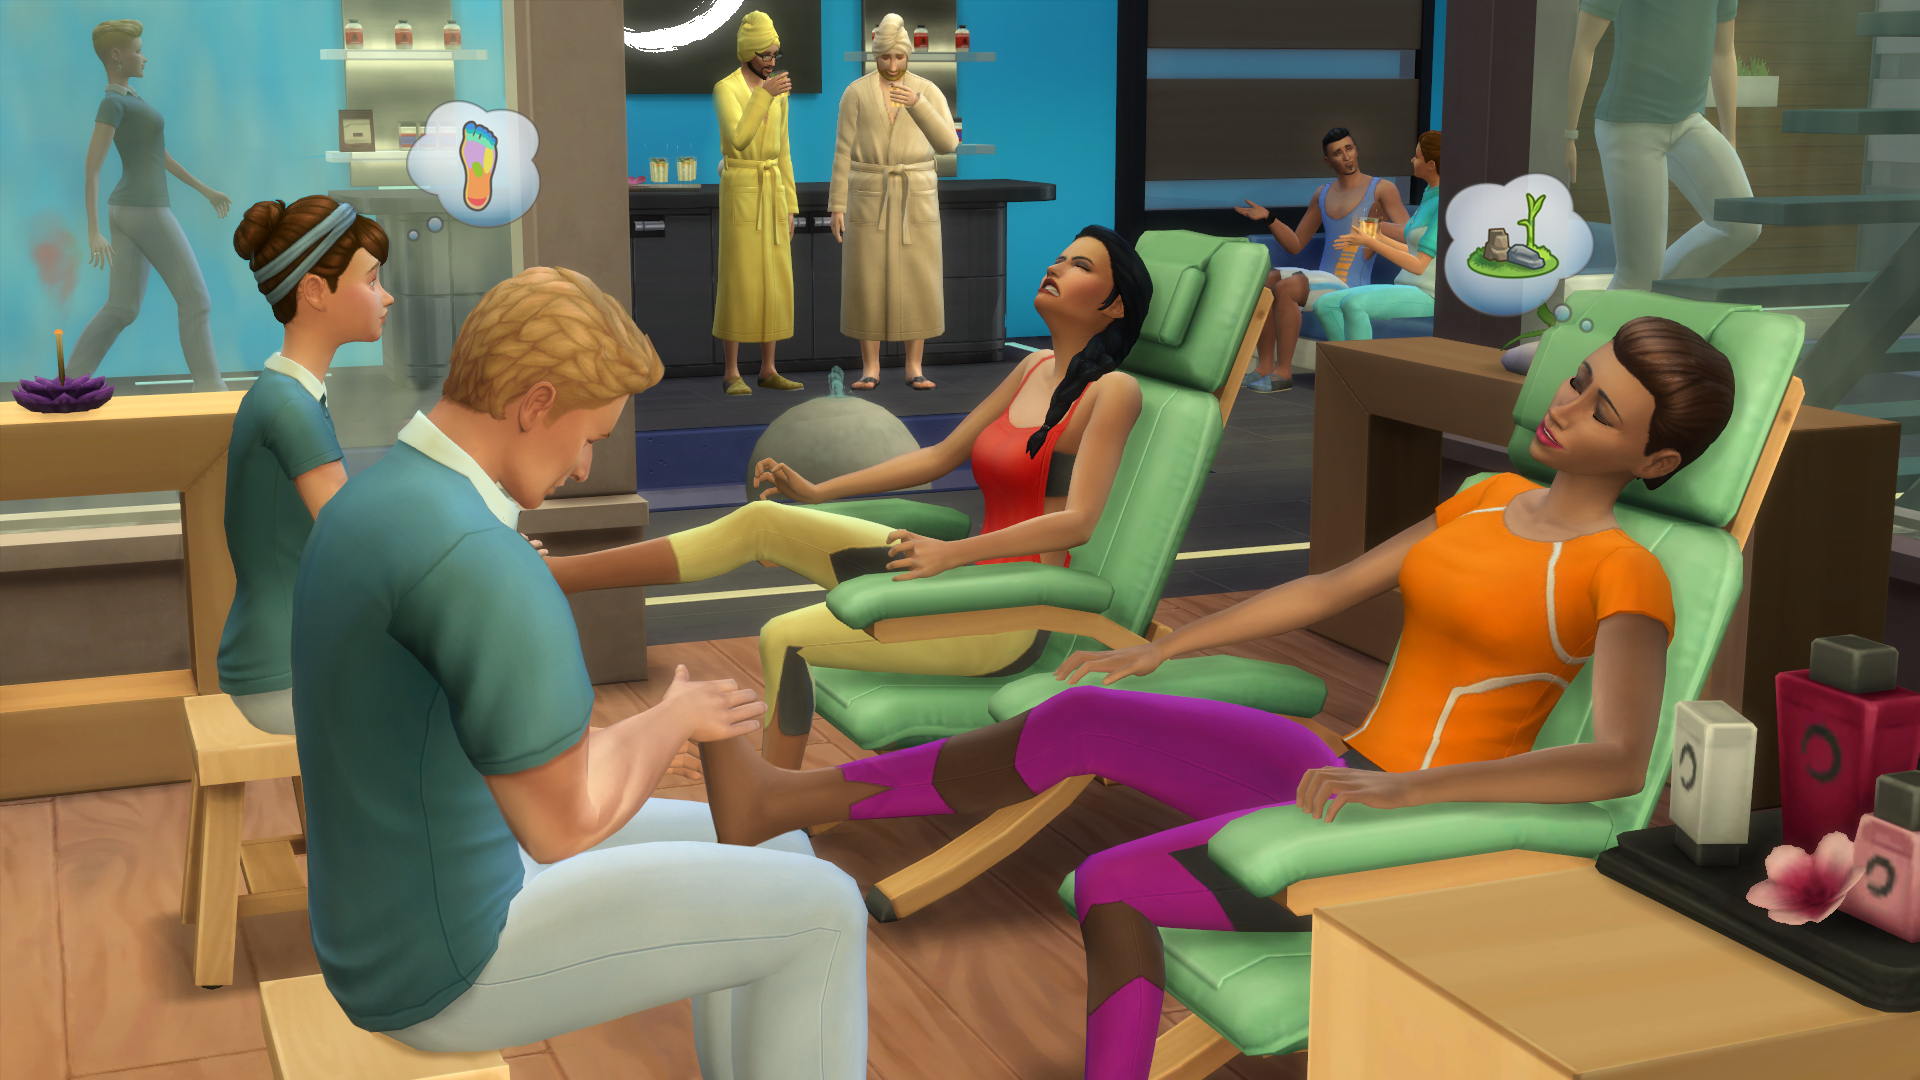 Salon spa | Simspedia | Fandom